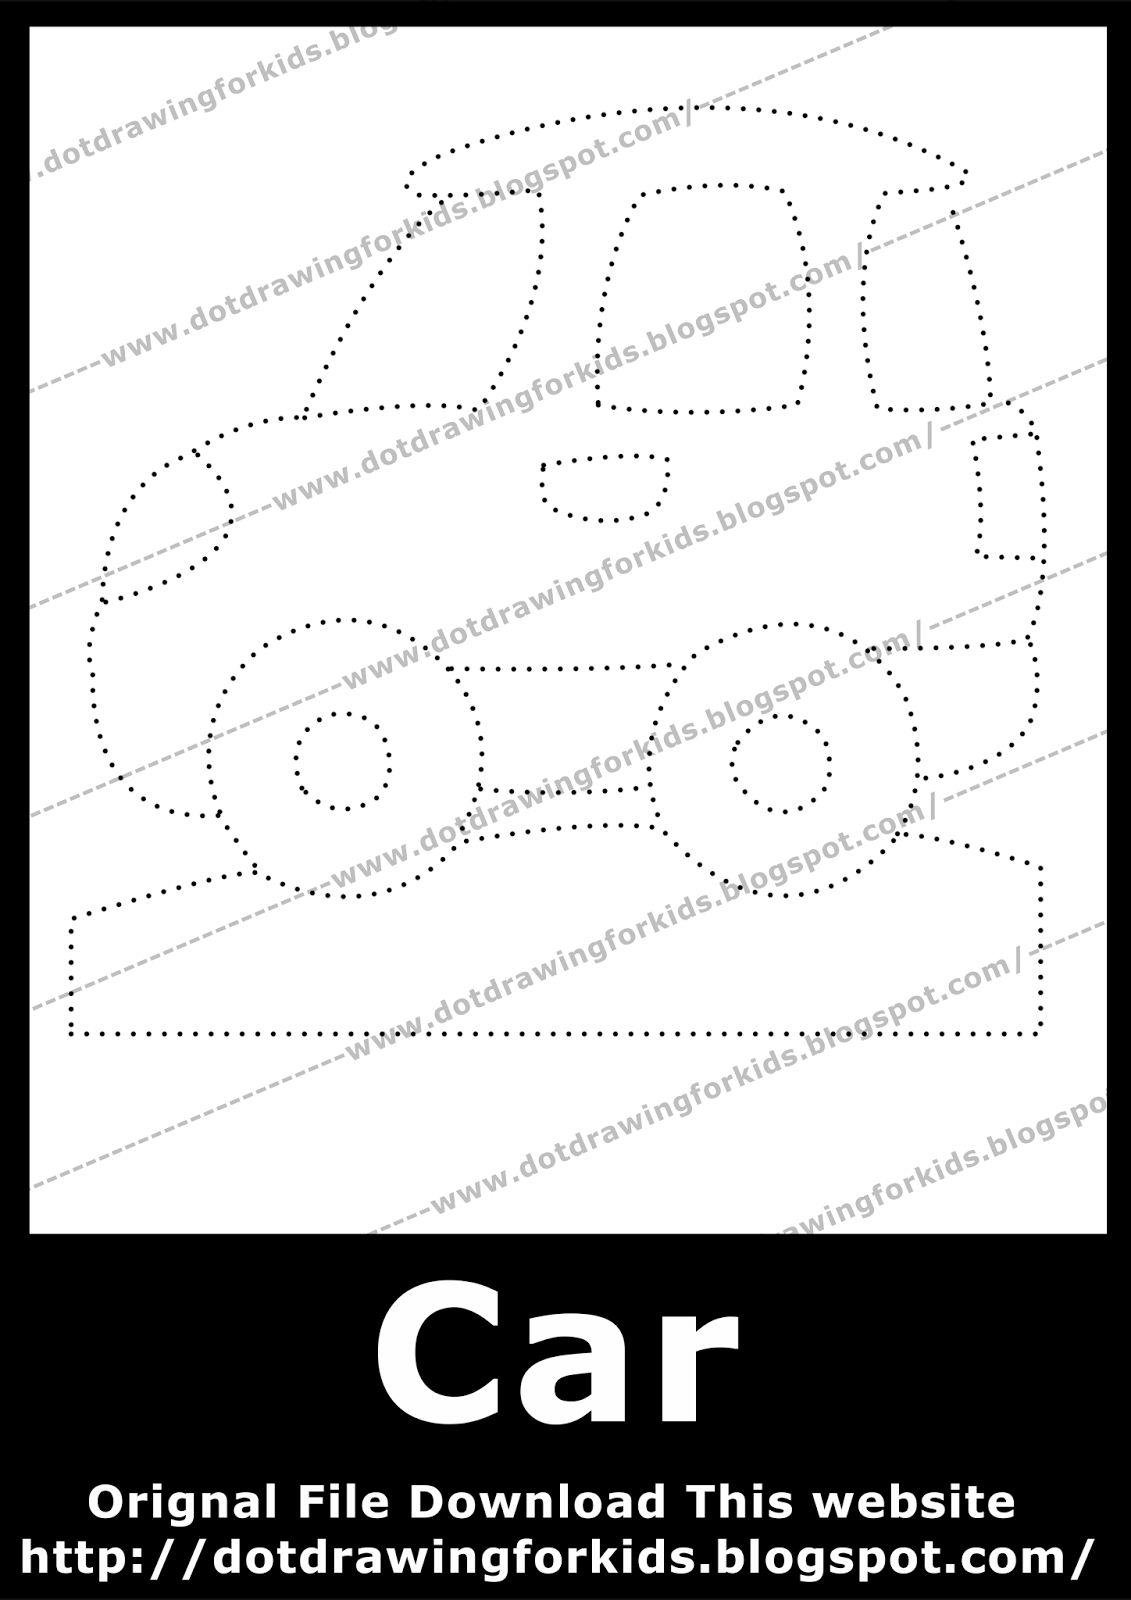 medium resolution of car dot drawing for kids dot to dot drawings free dotted drawing images